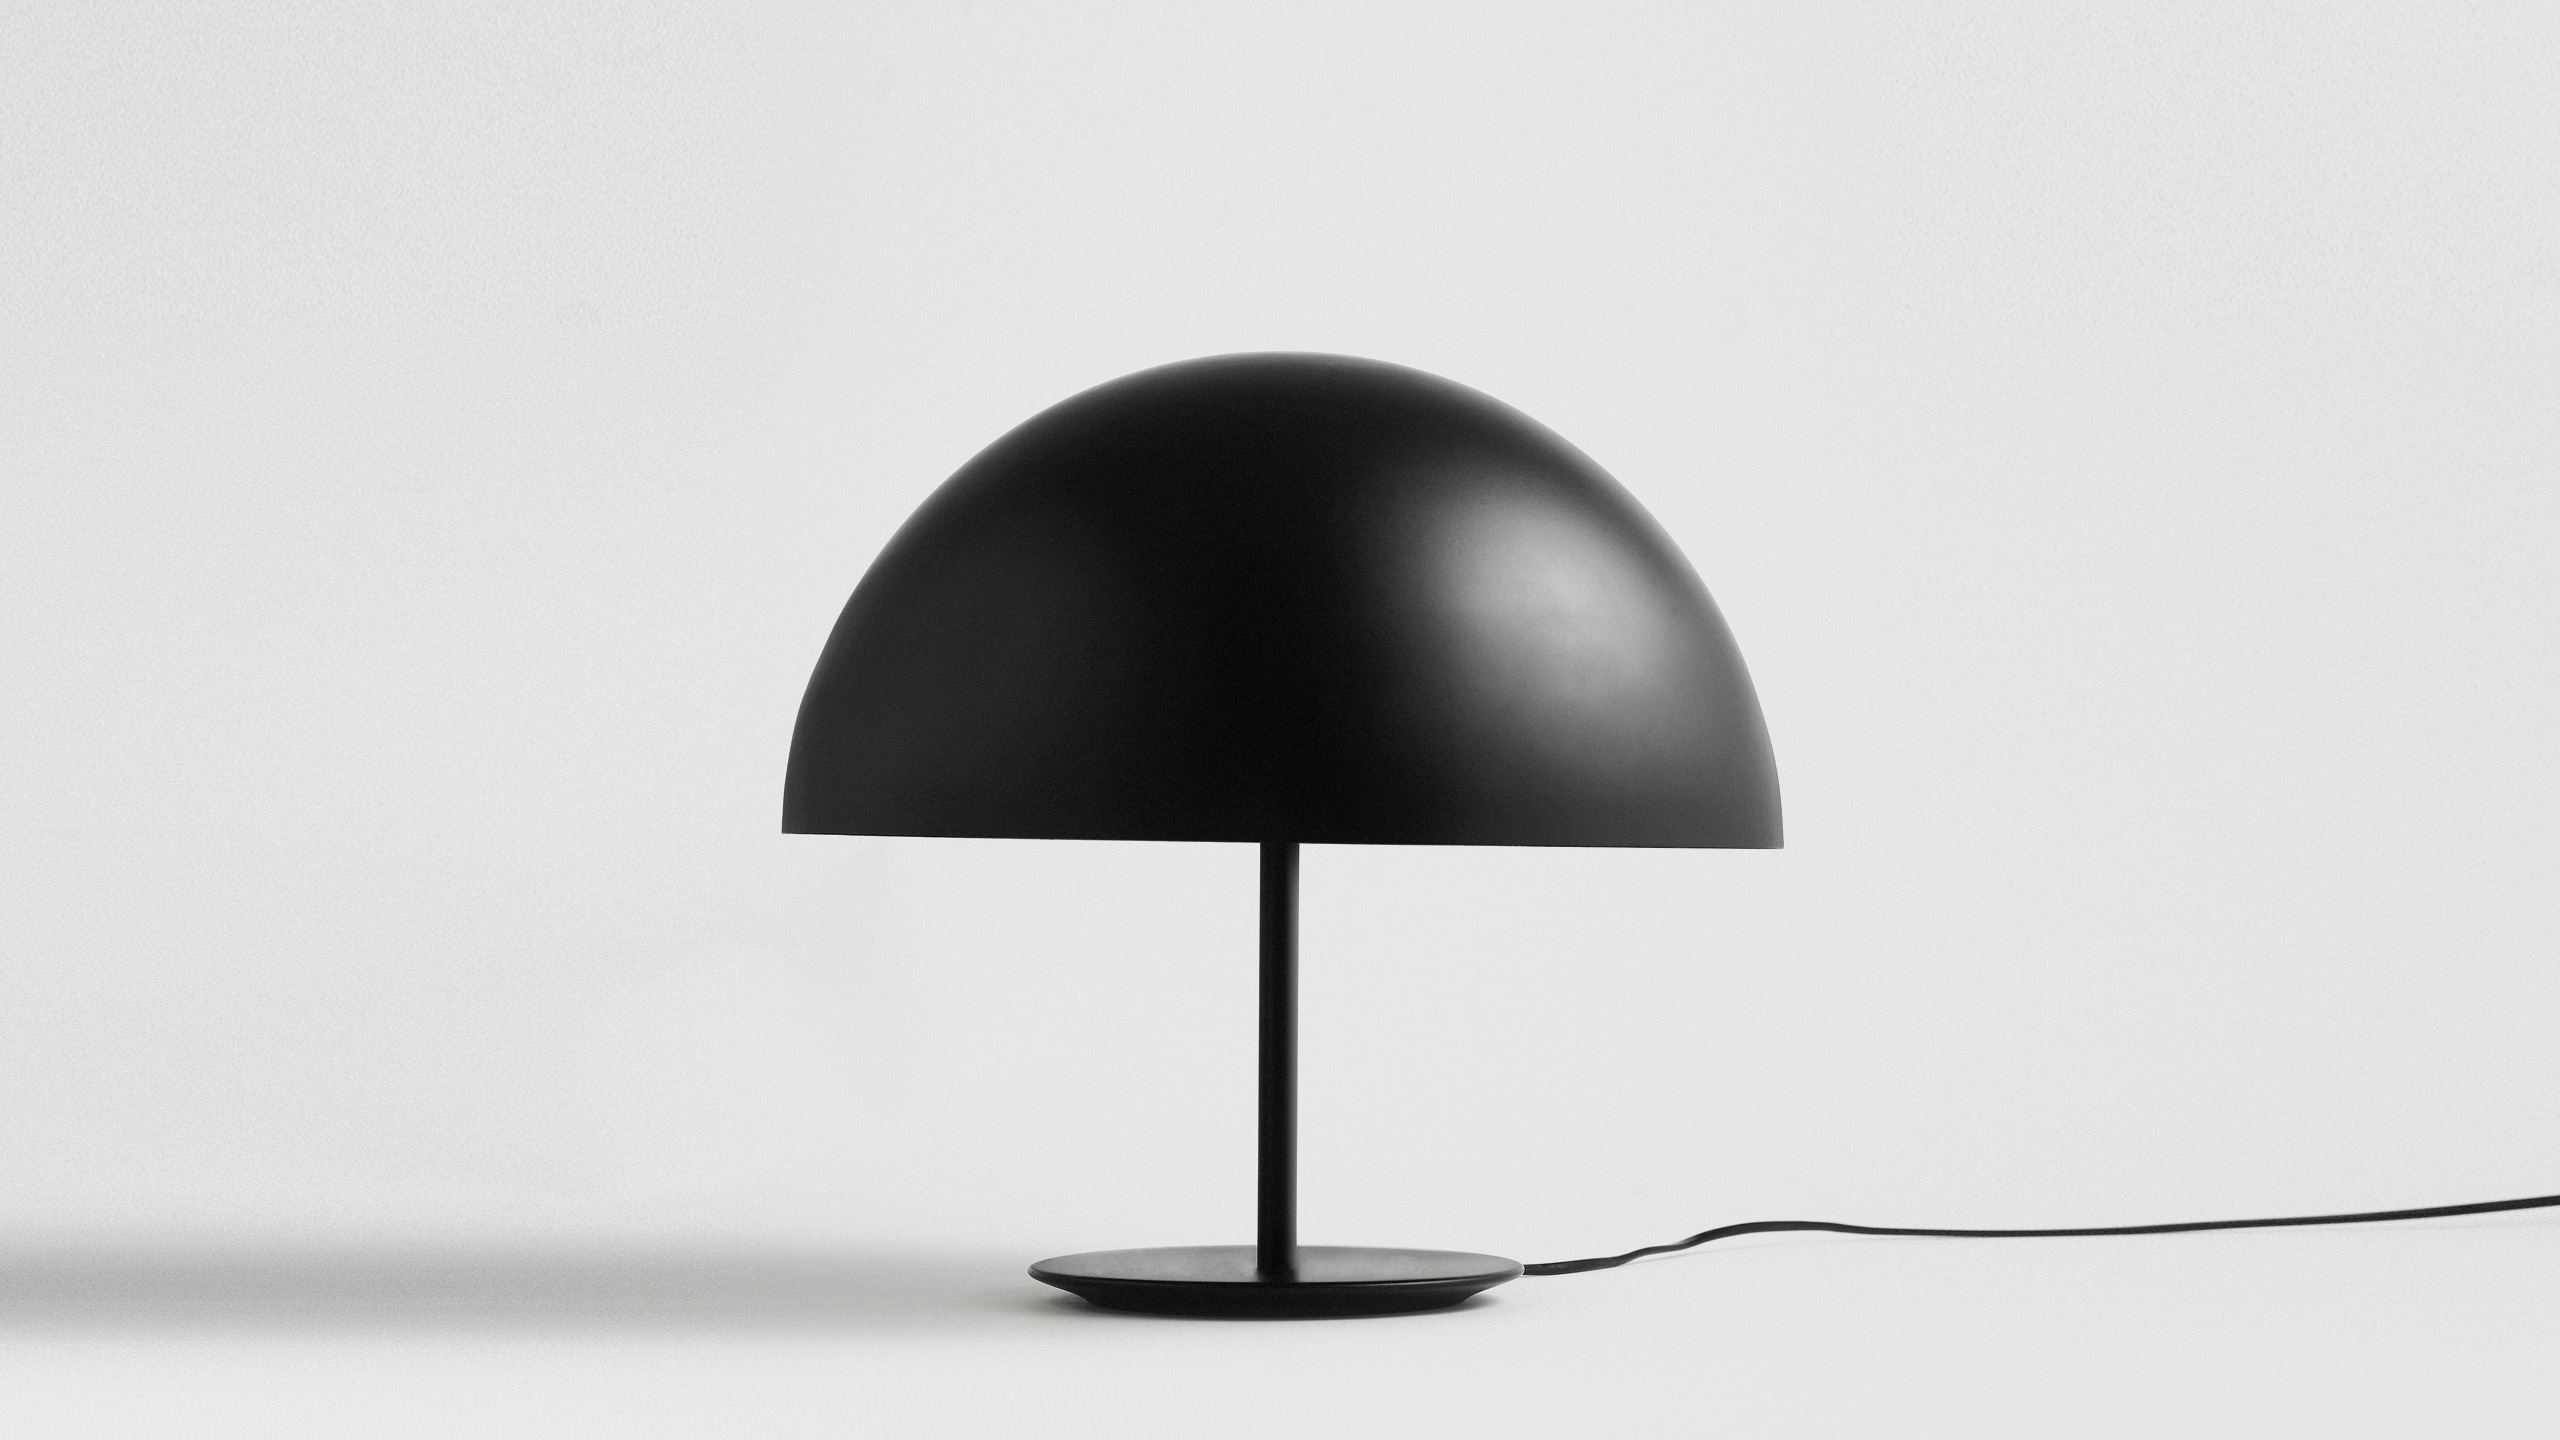 Dome Wins Lamp of the Year